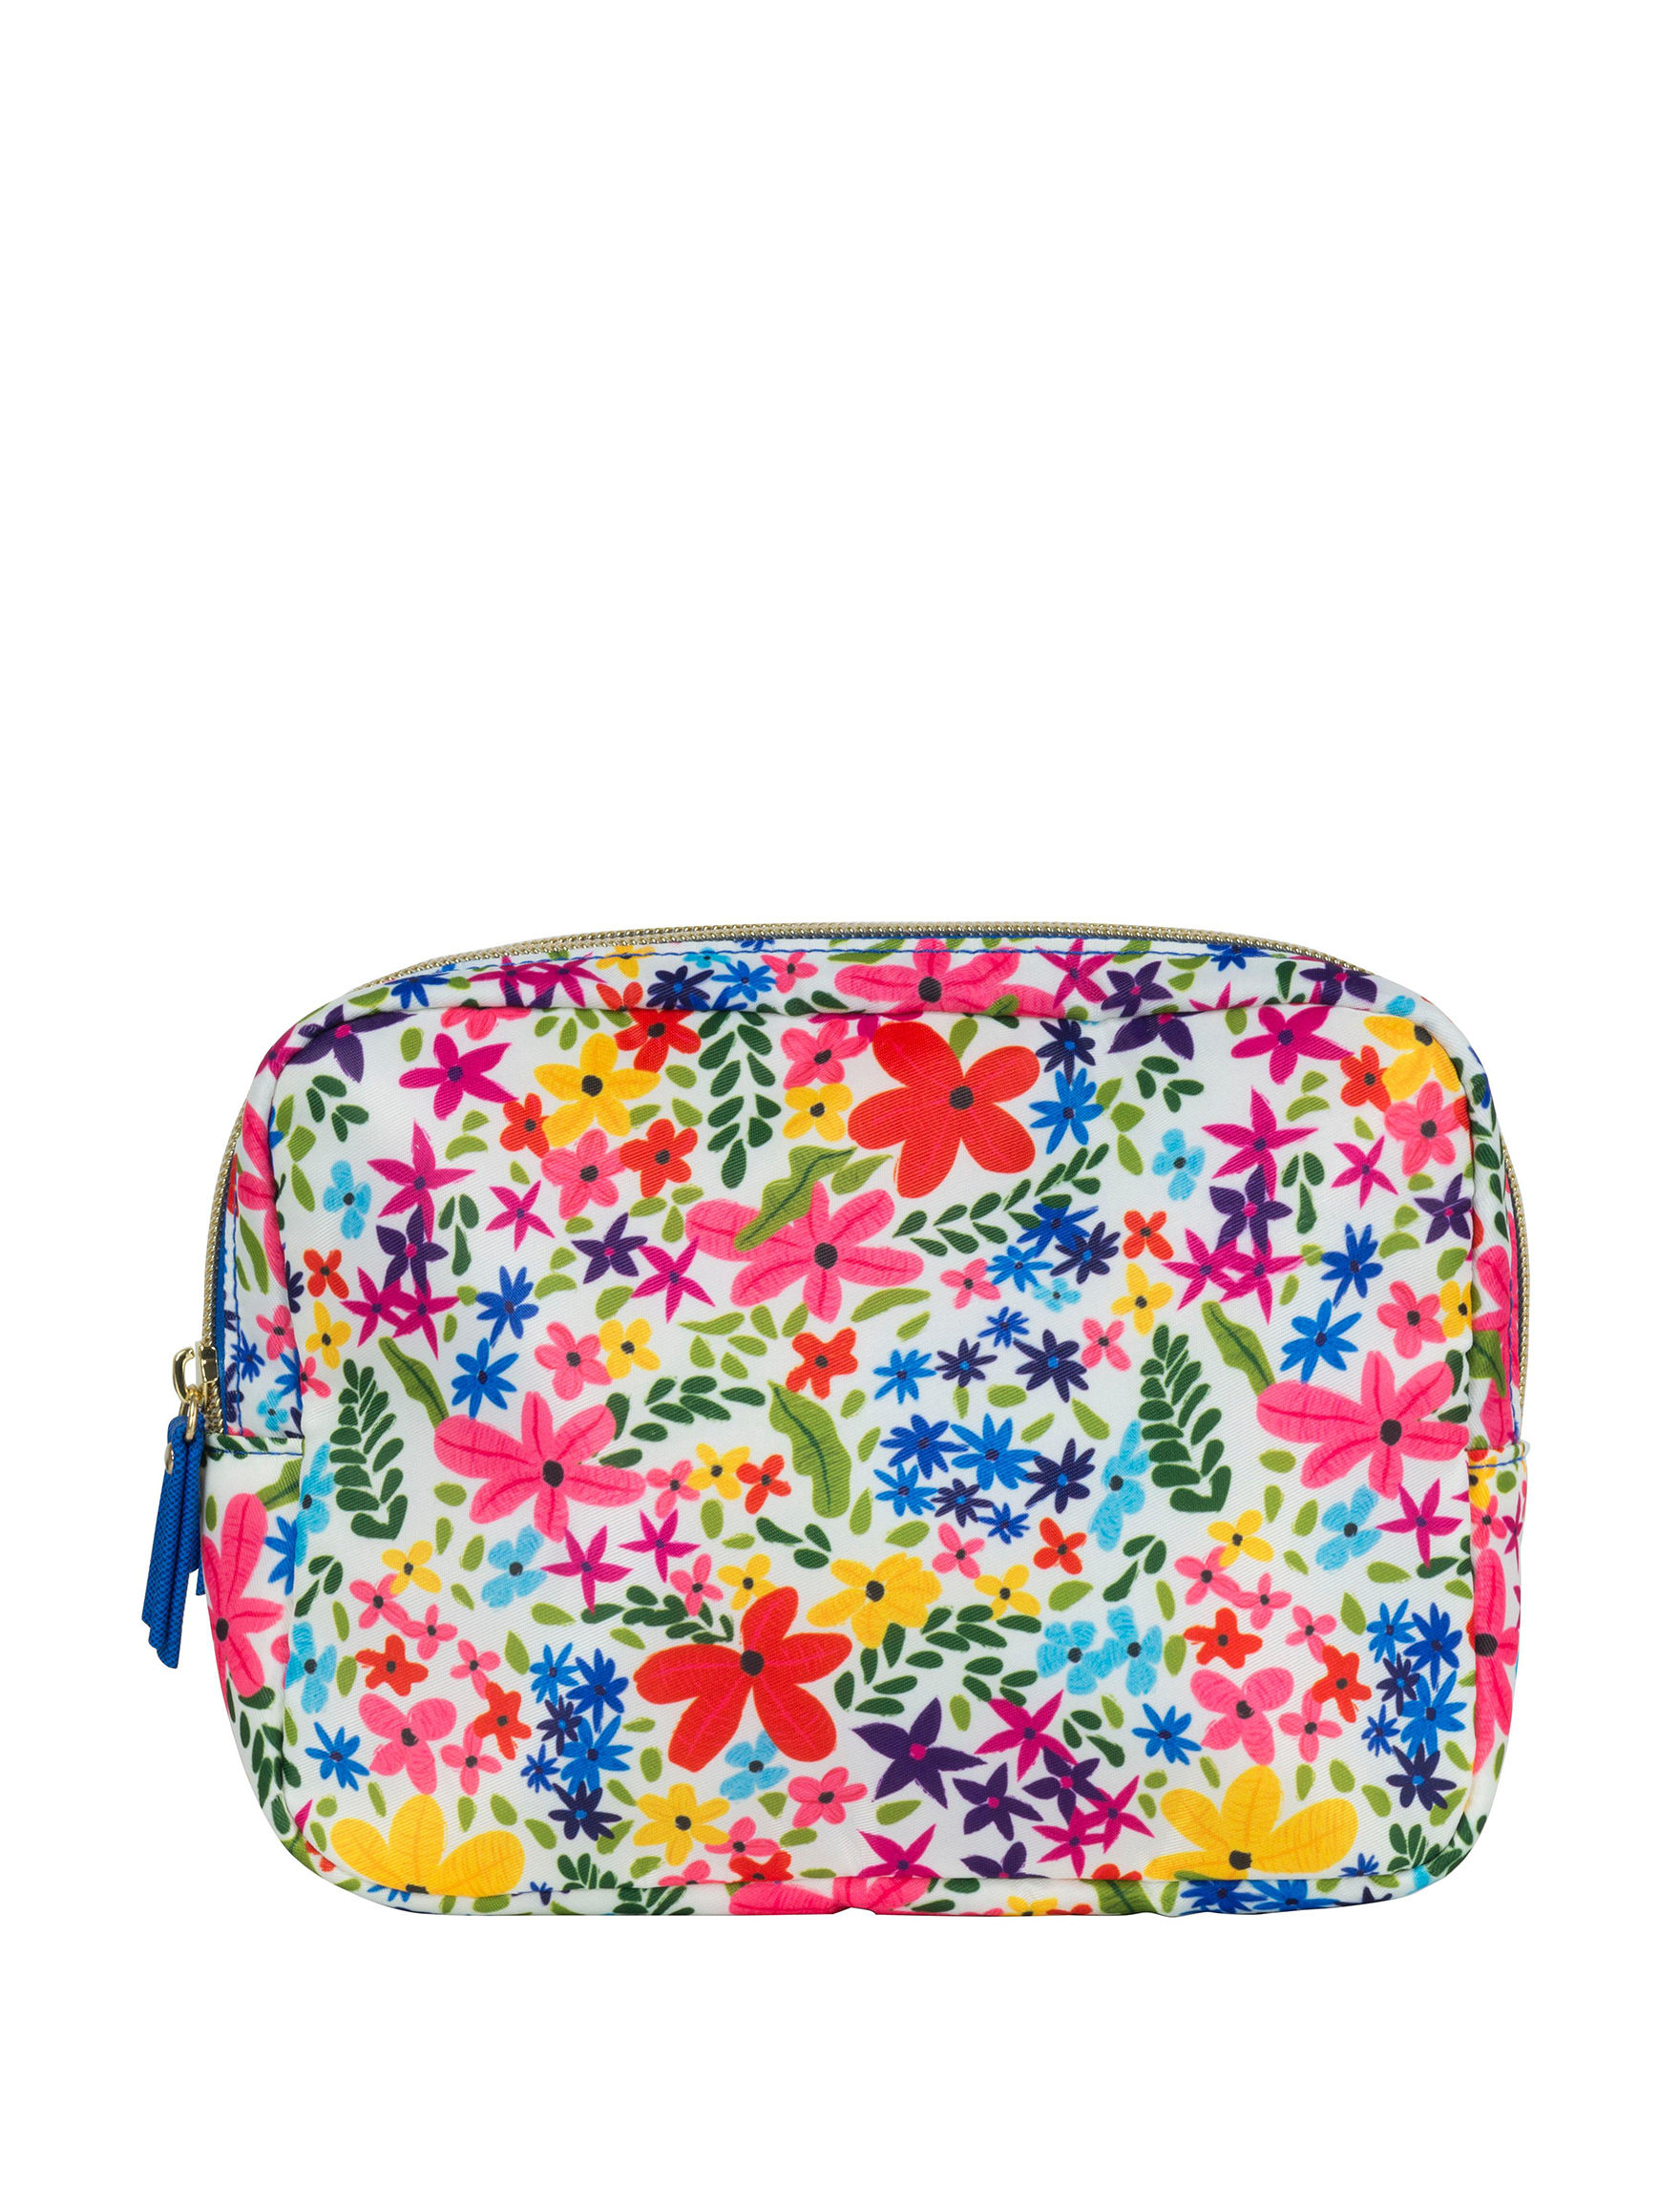 Madison Spencer Floral Pouch